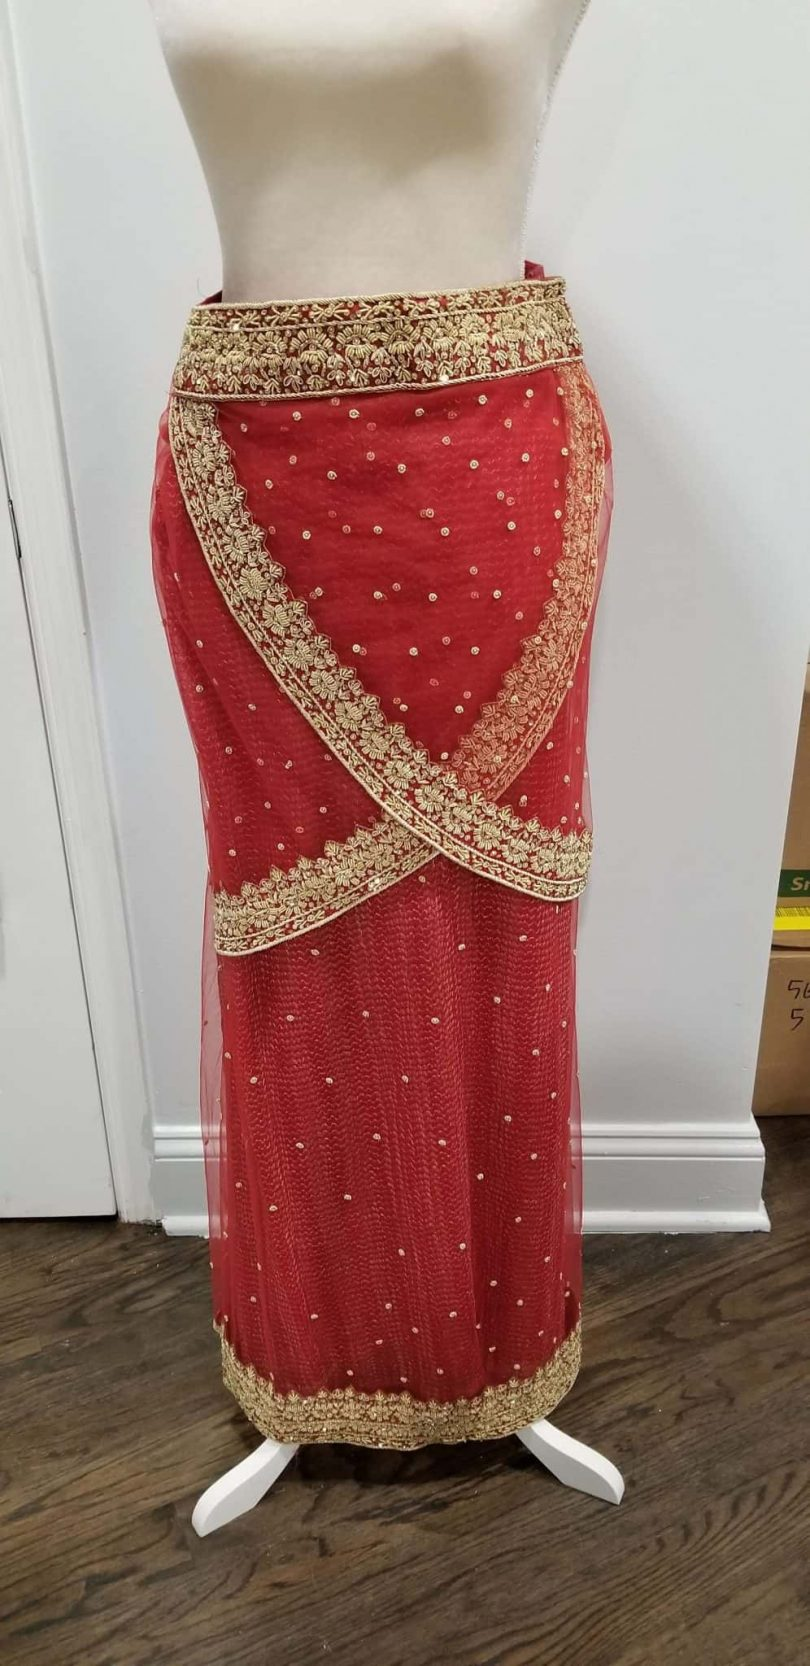 skirt of pinkish red lehenga